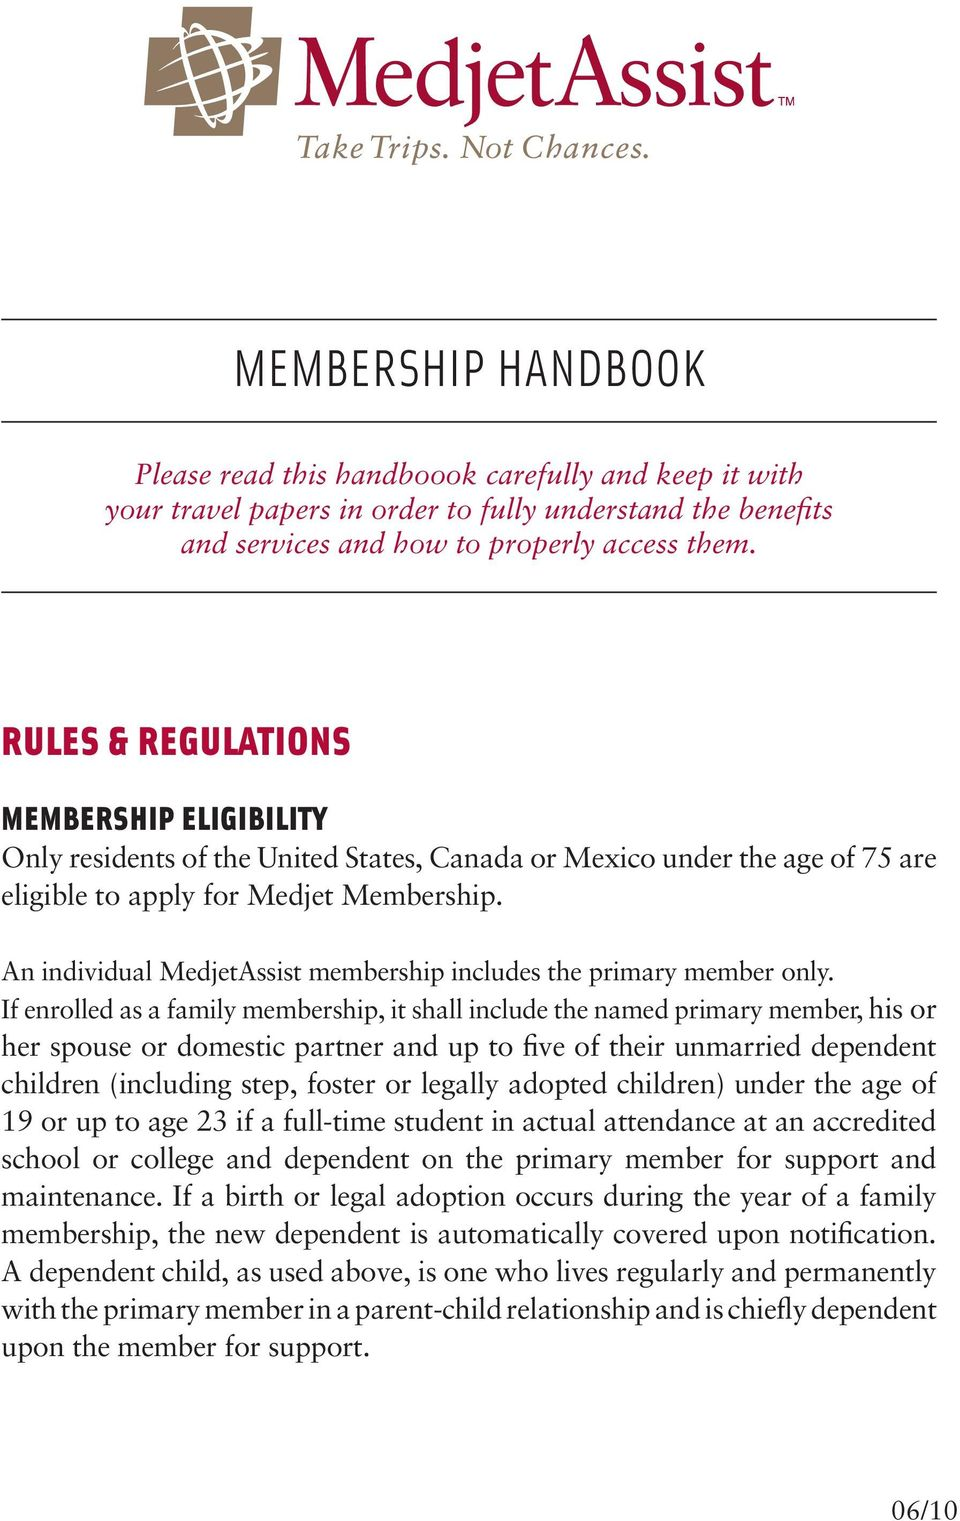 If enrolled as a family membership, it shall include the named primary member, his or her spouse or domestic partner and up to five of their unmarried dependent children (including step, foster or